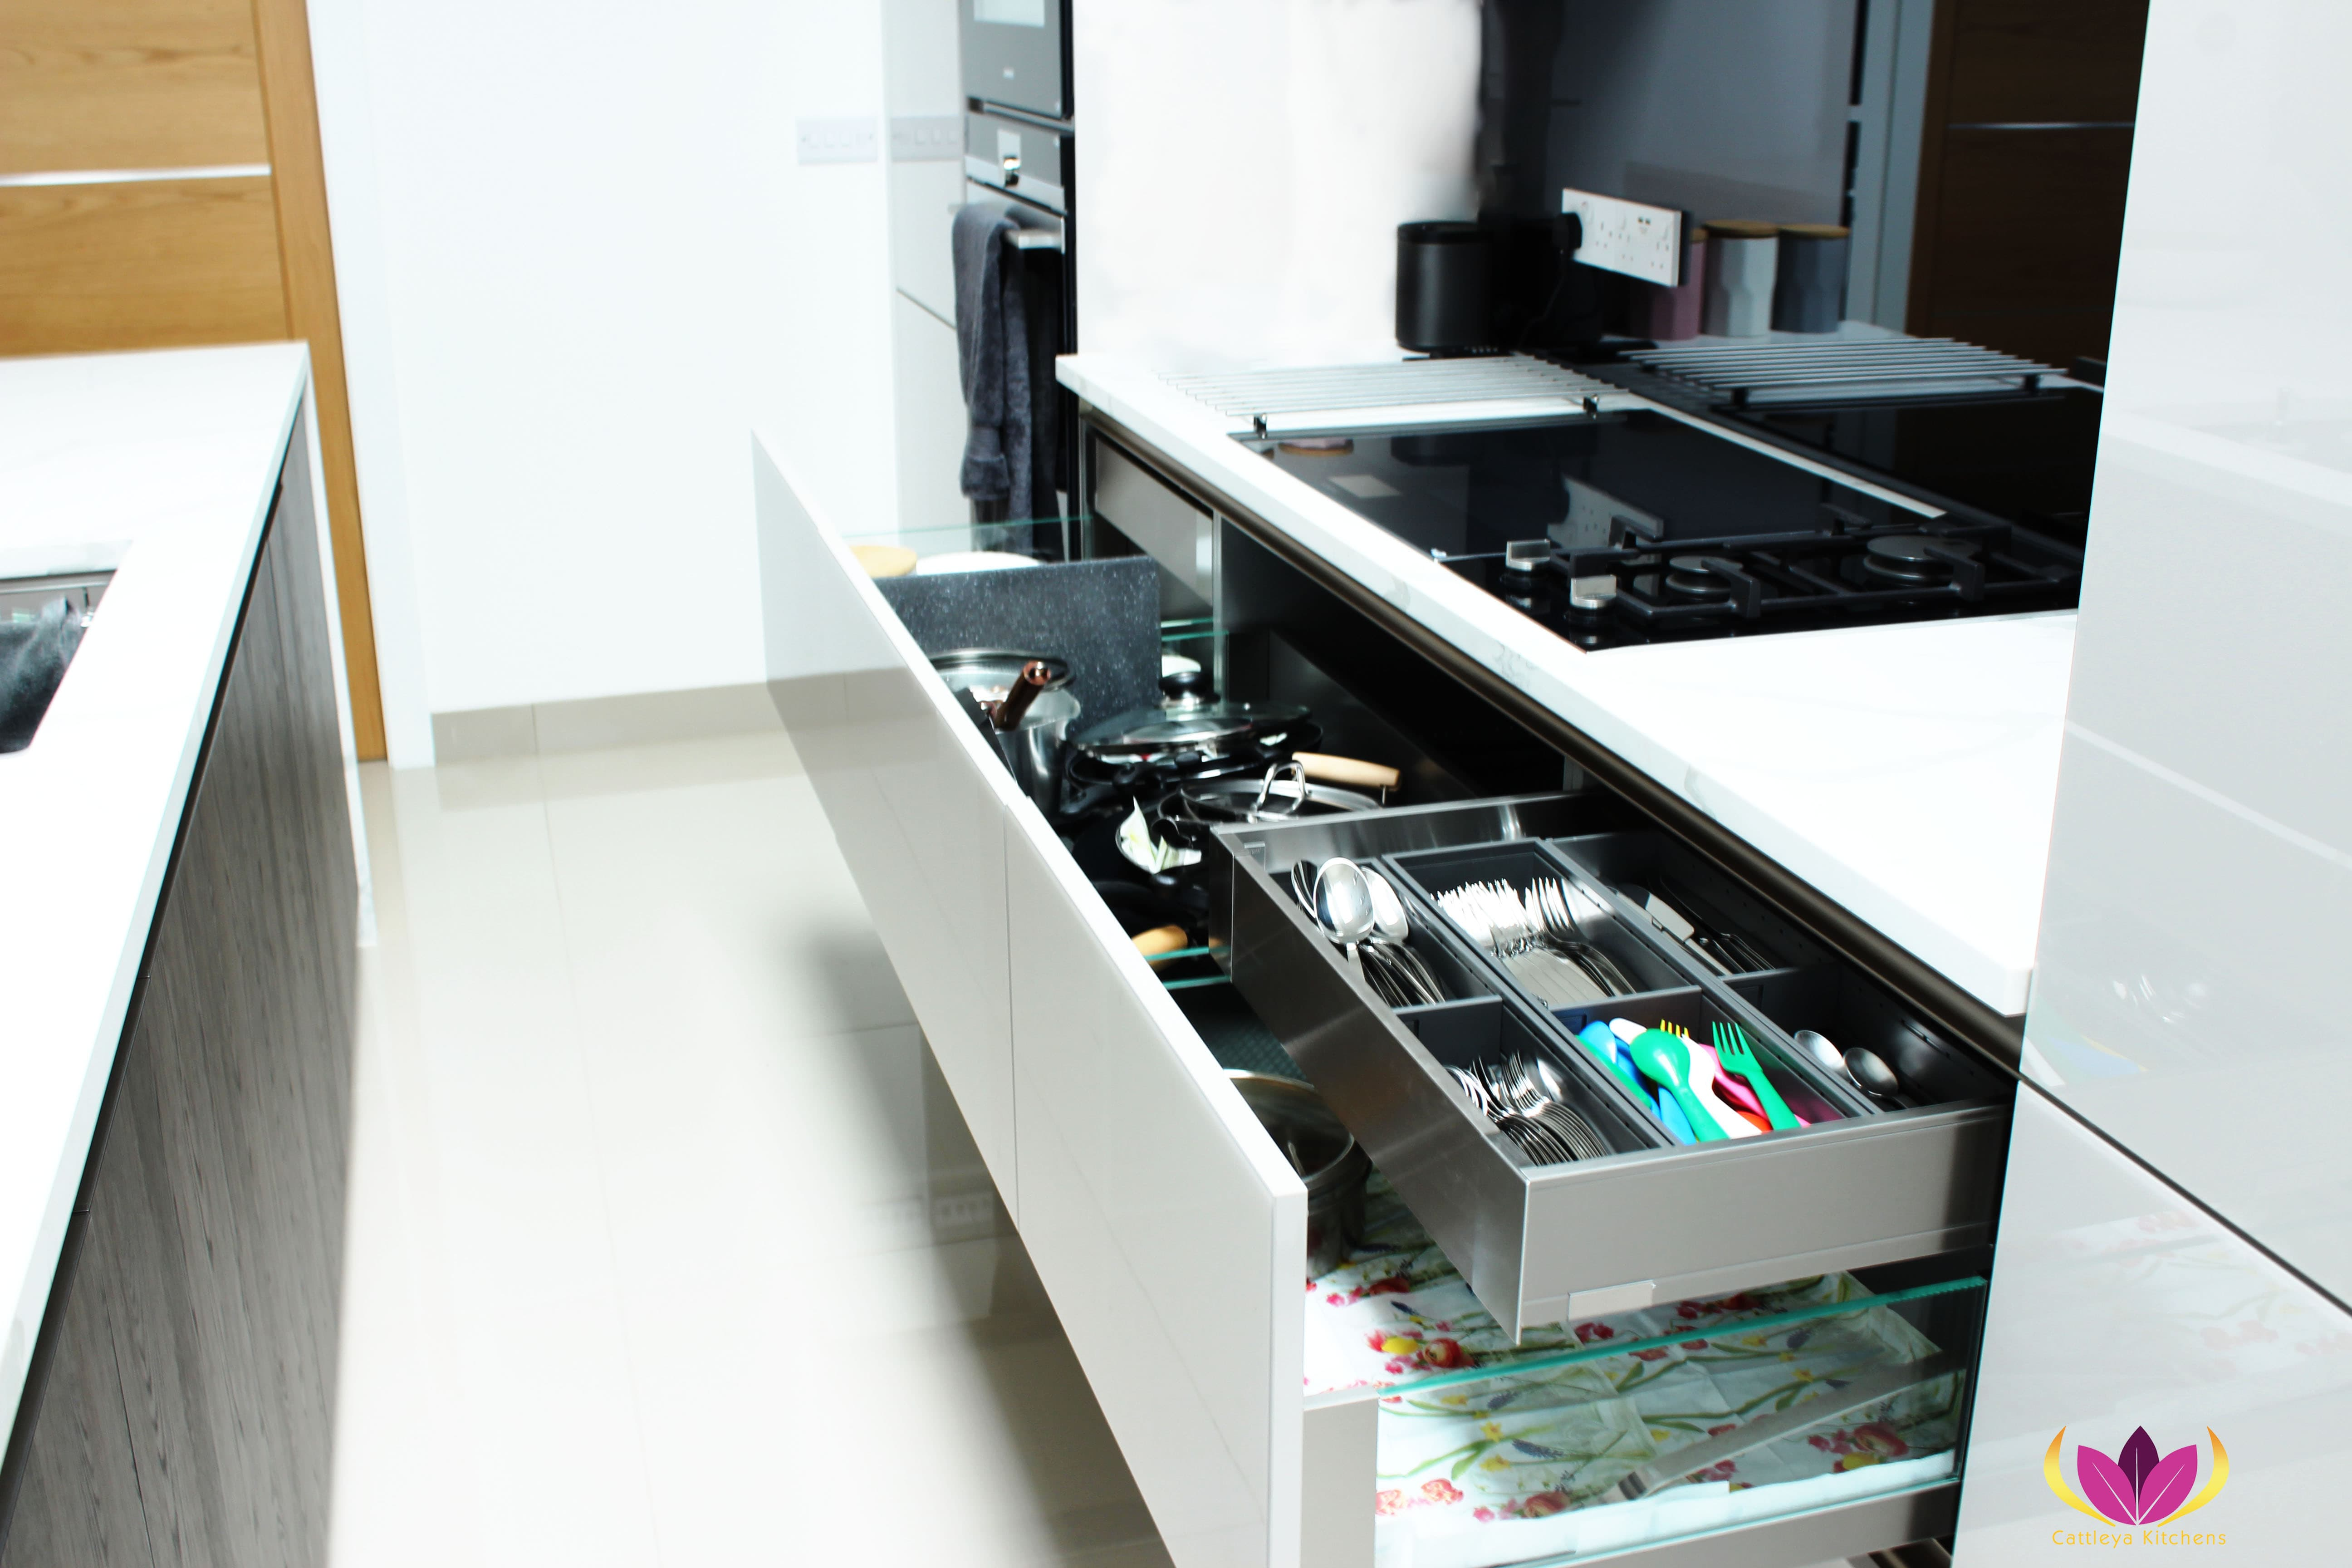 Drawers inside drawers integrated with separation system - Greenford Finished Kitchen Project